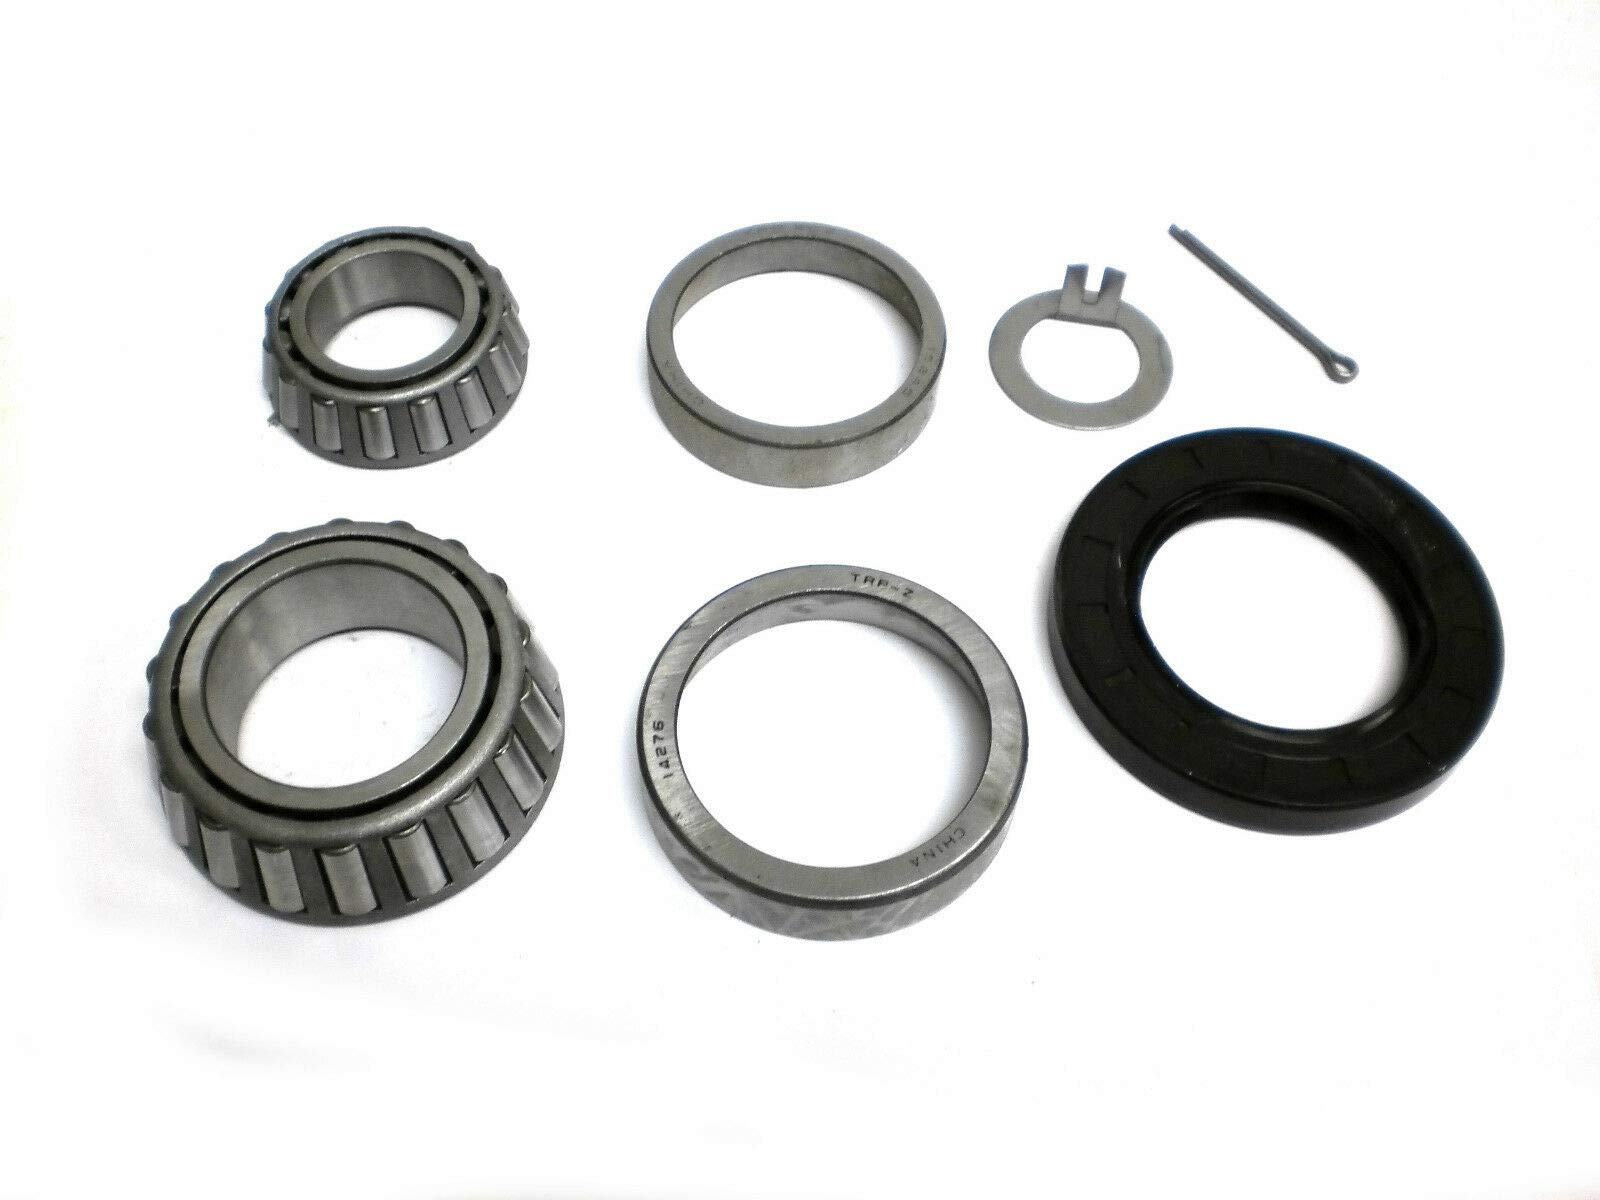 Complete Trailer Bearing Kit for 6000# Axles #42 Spindle 15123/22580 Bearings by unbrand